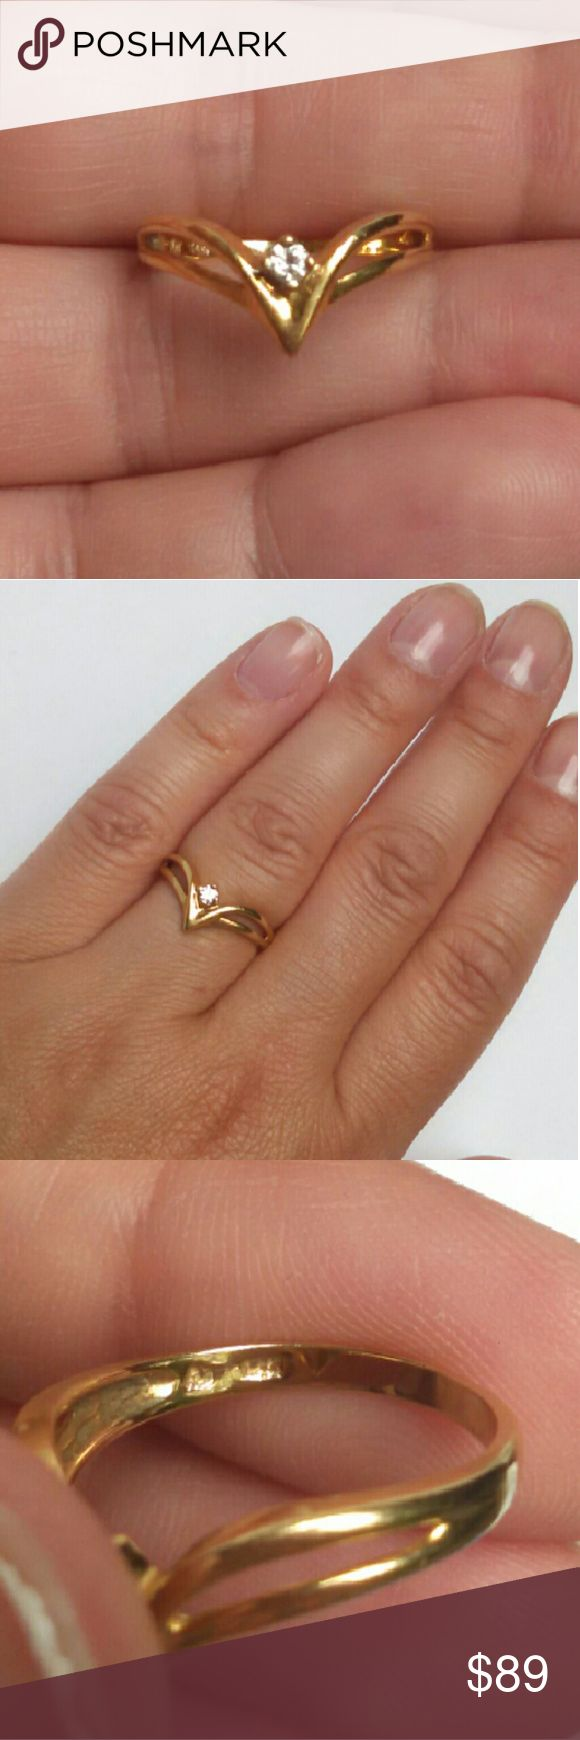 Unique 14k Gold Diamond V Ring Solid 14k Yellow Gold With A Real Natural  Diamond Approx